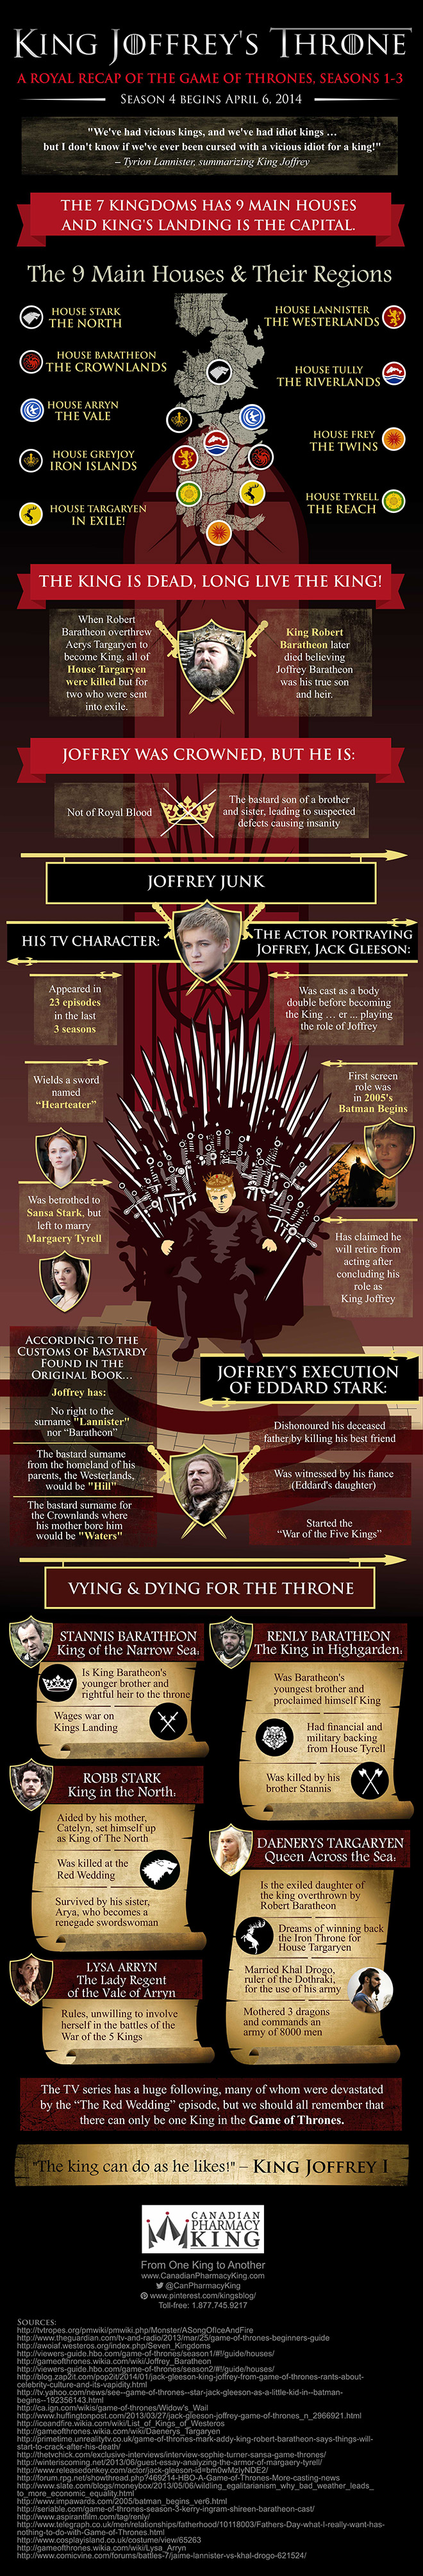 King Joffrey's Throne Infographic